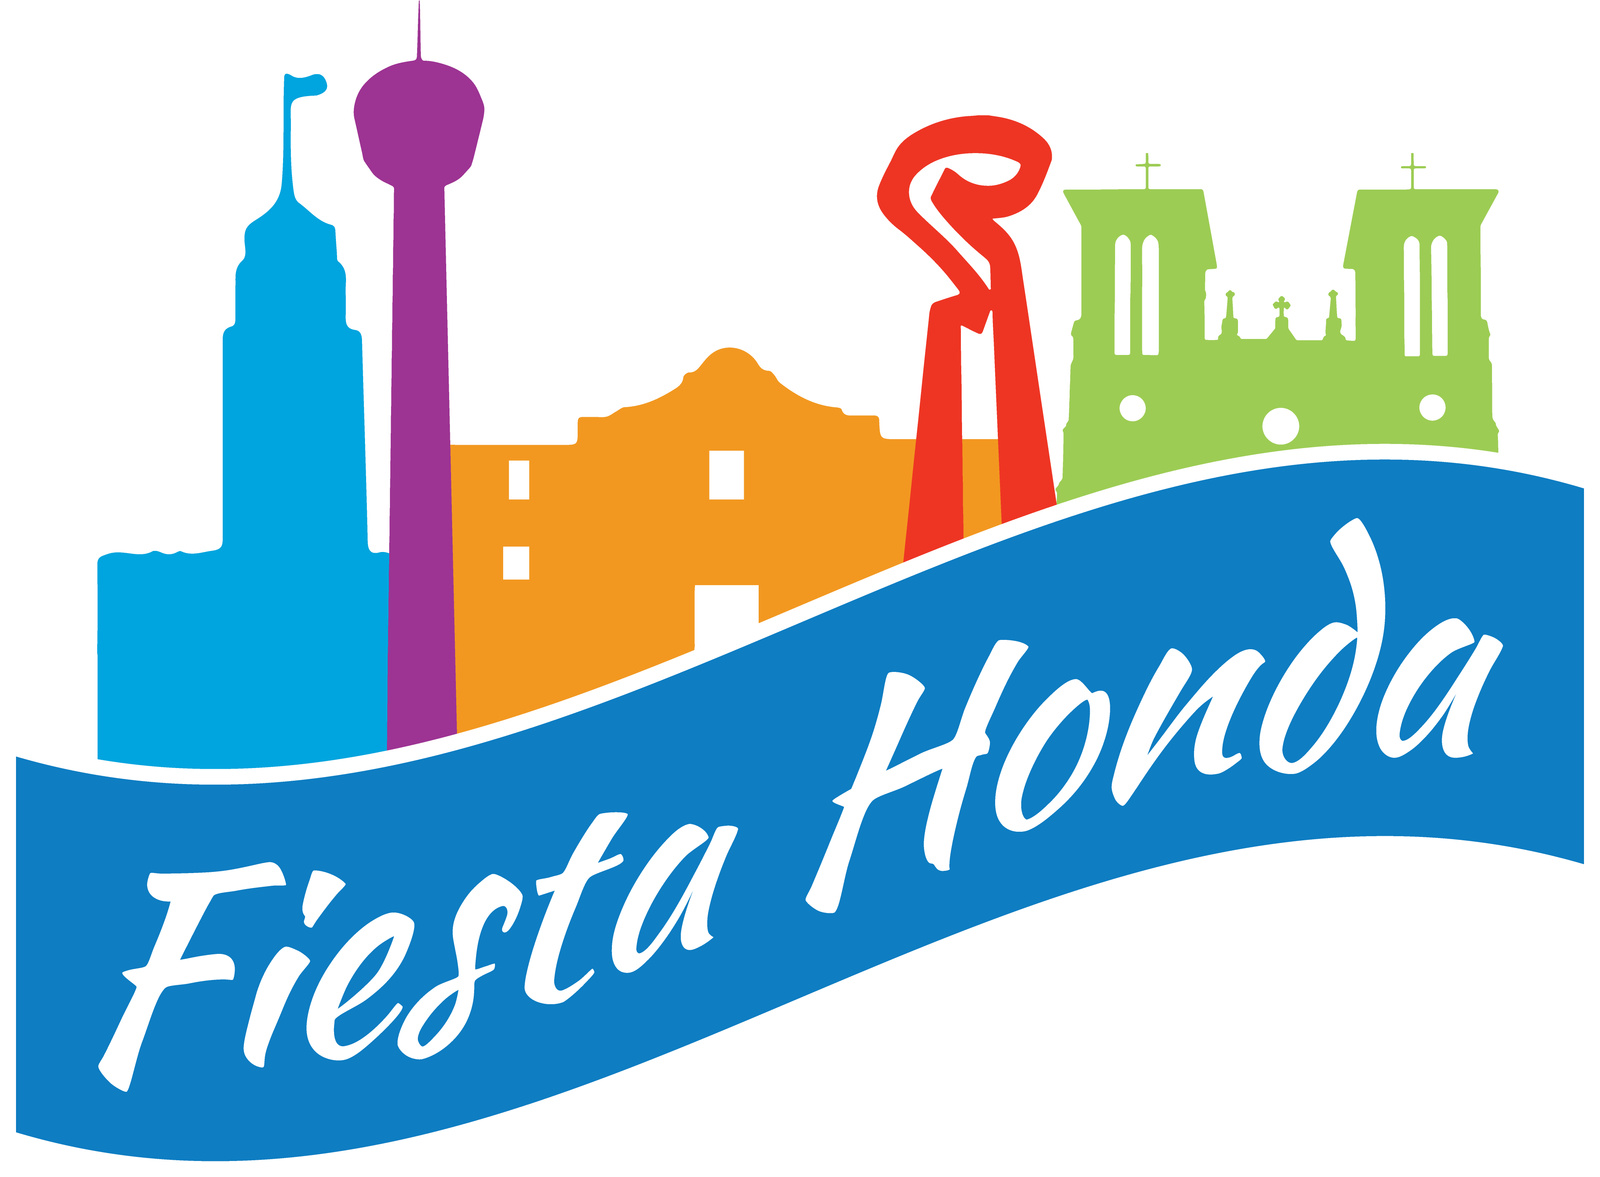 Fiesta honda san antonio tx read consumer reviews for Benson honda san antonio